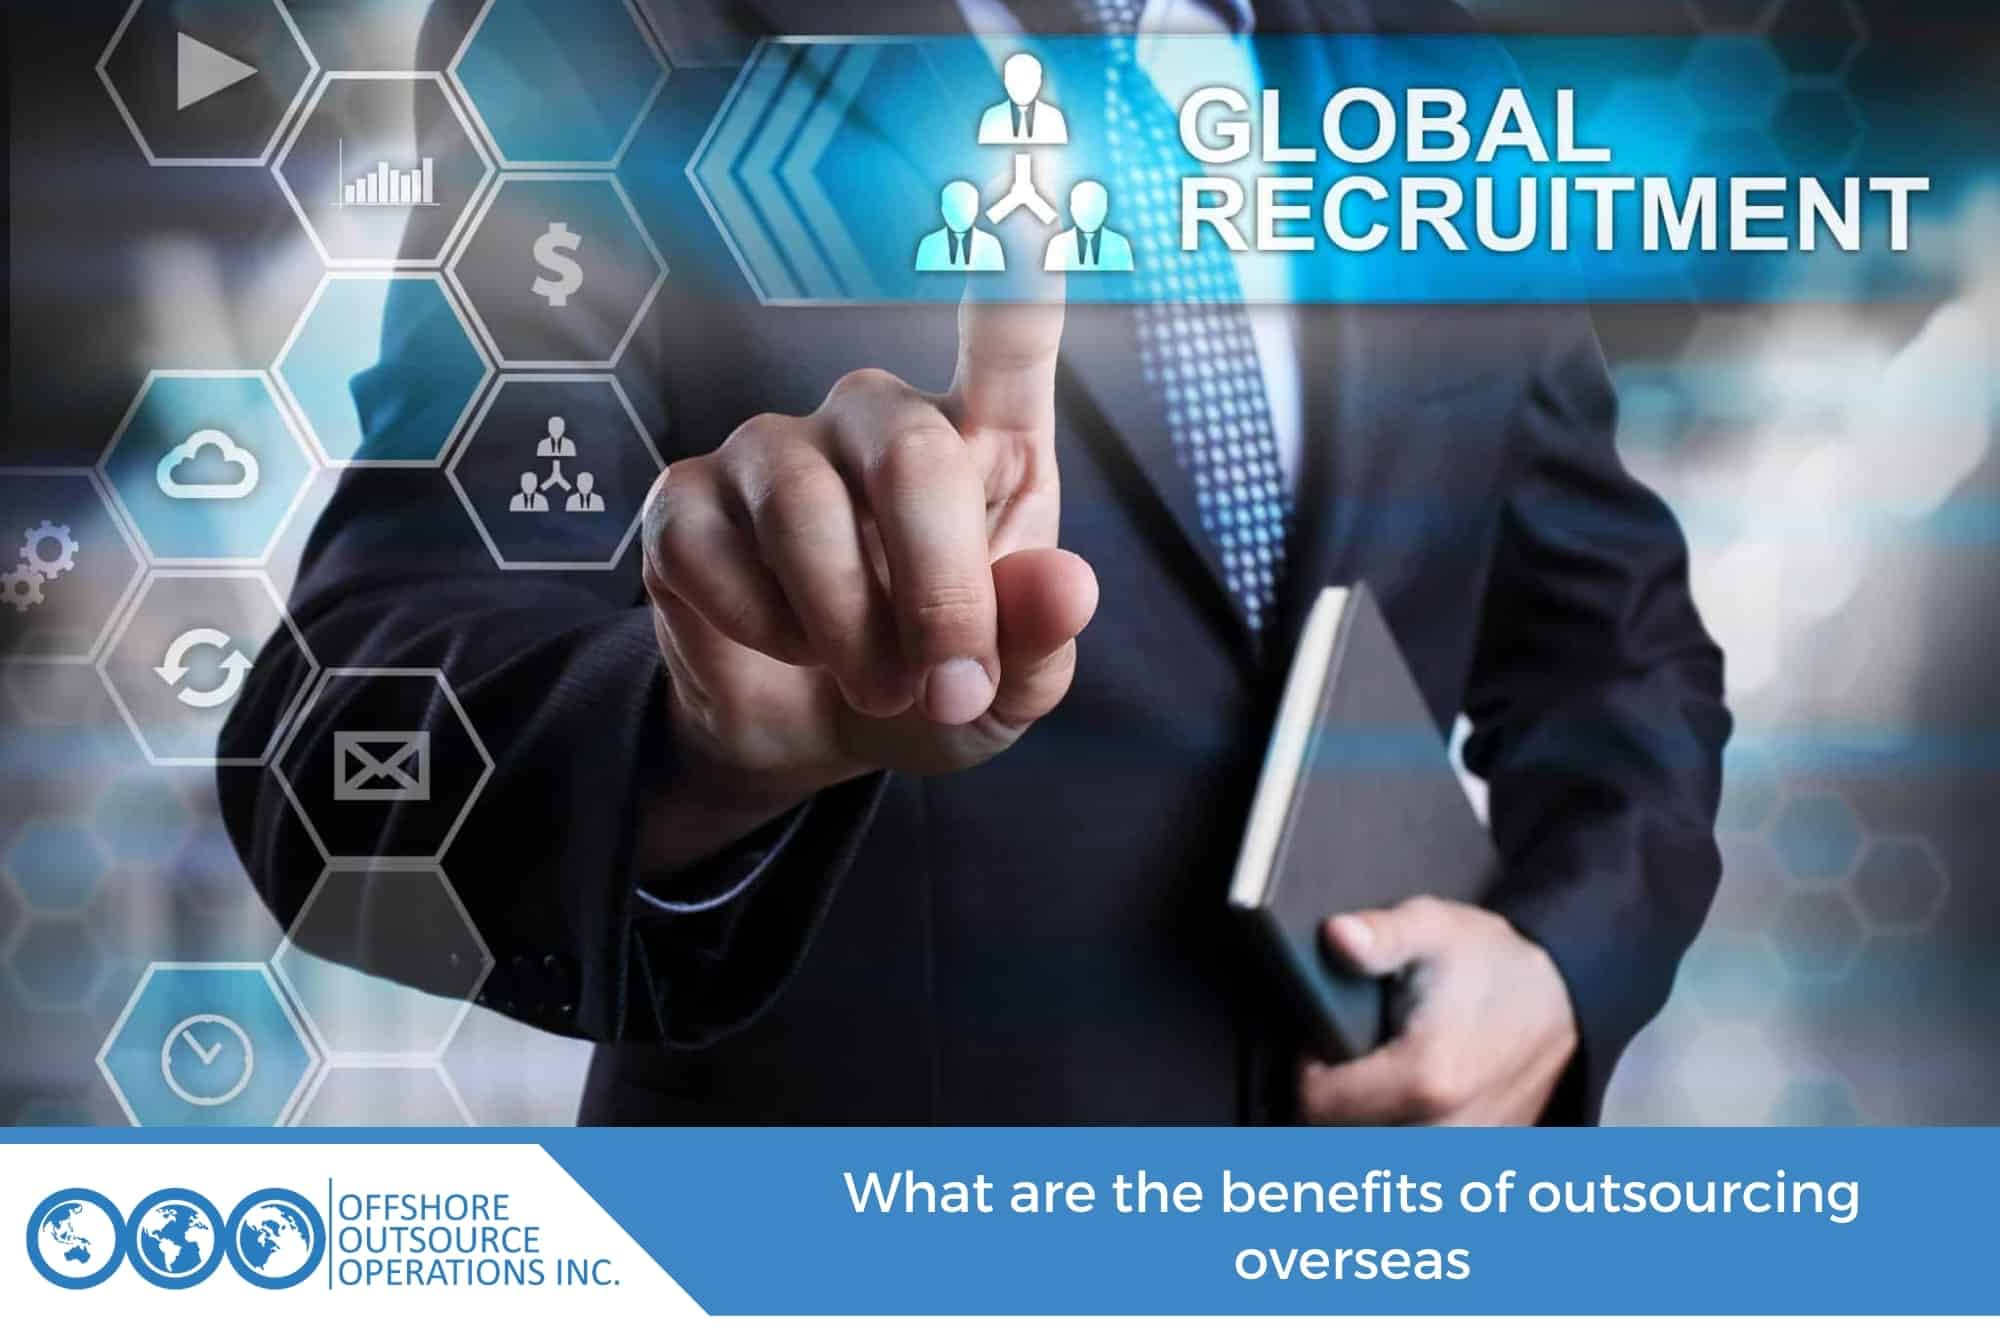 What are the benefits of outsourcing overseas